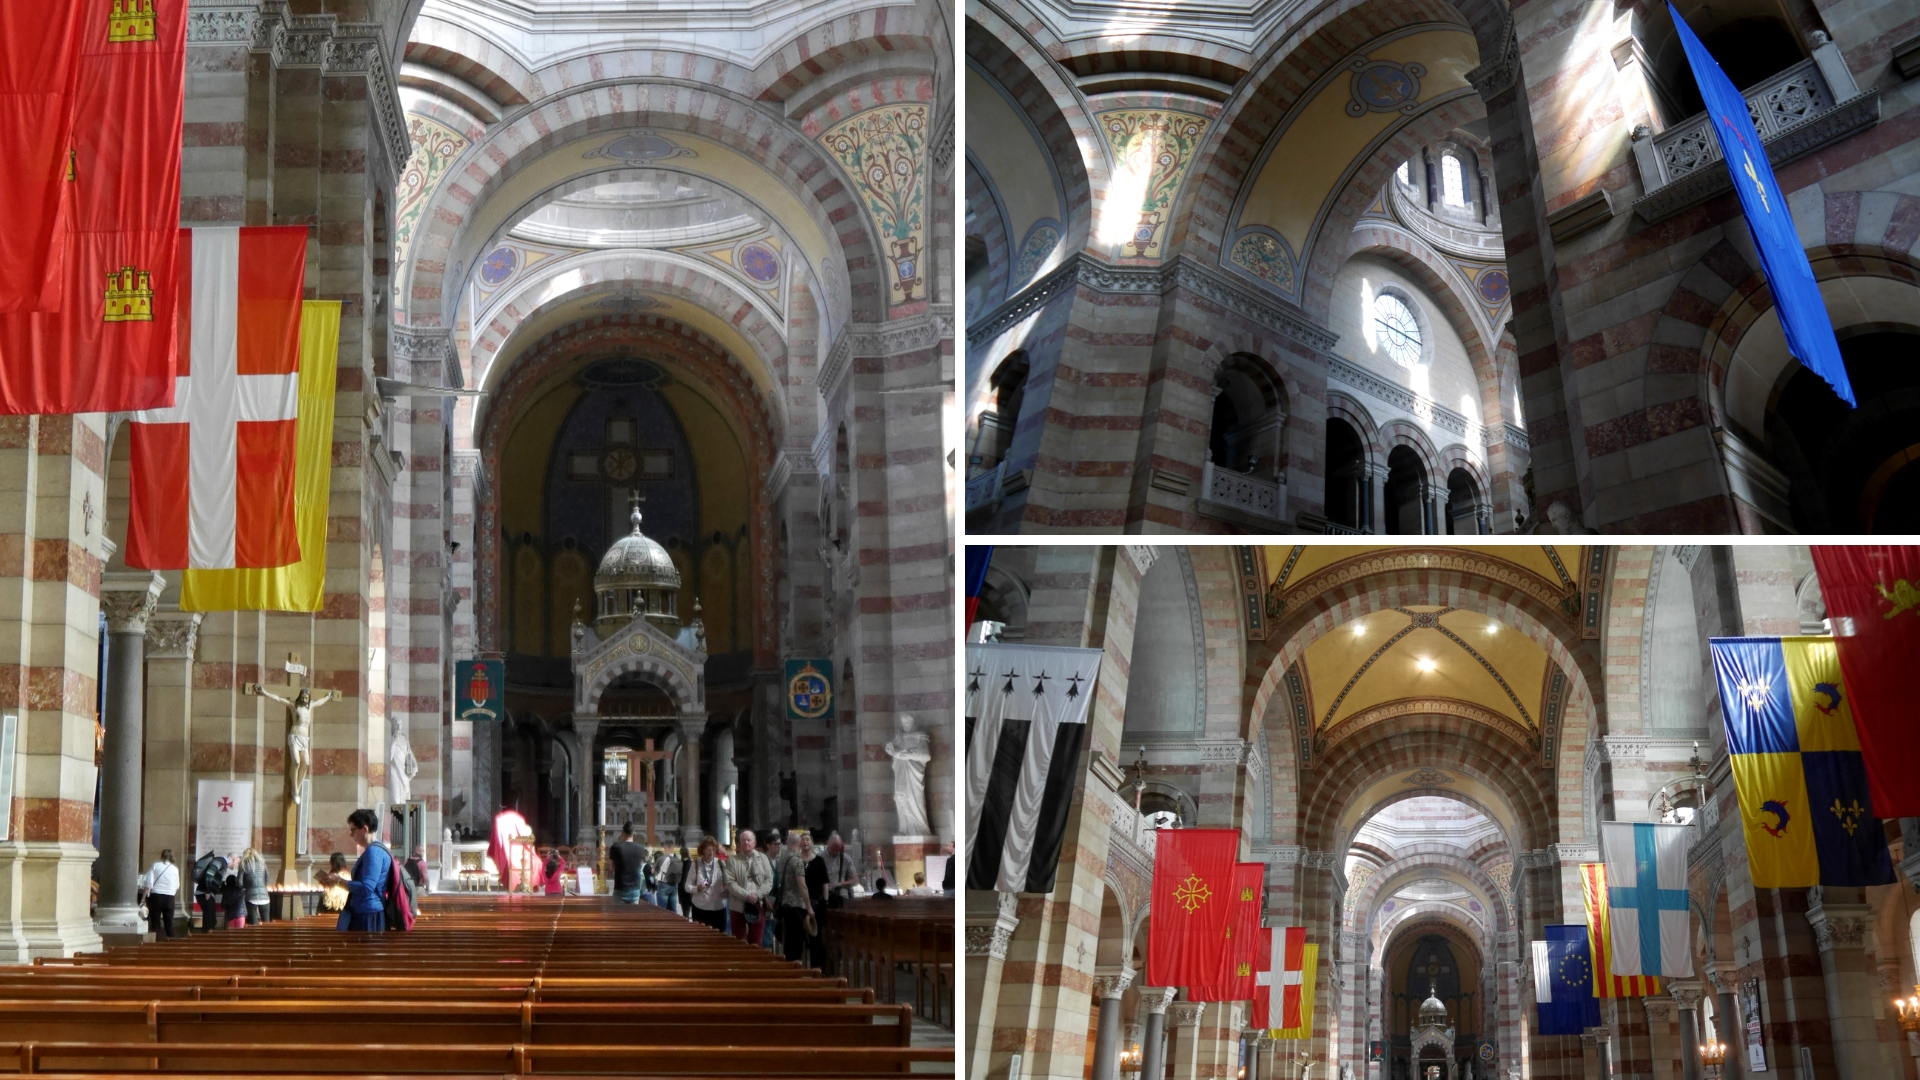 marseille cathedrale major visiter provence blog voyage france arpenter le chemin